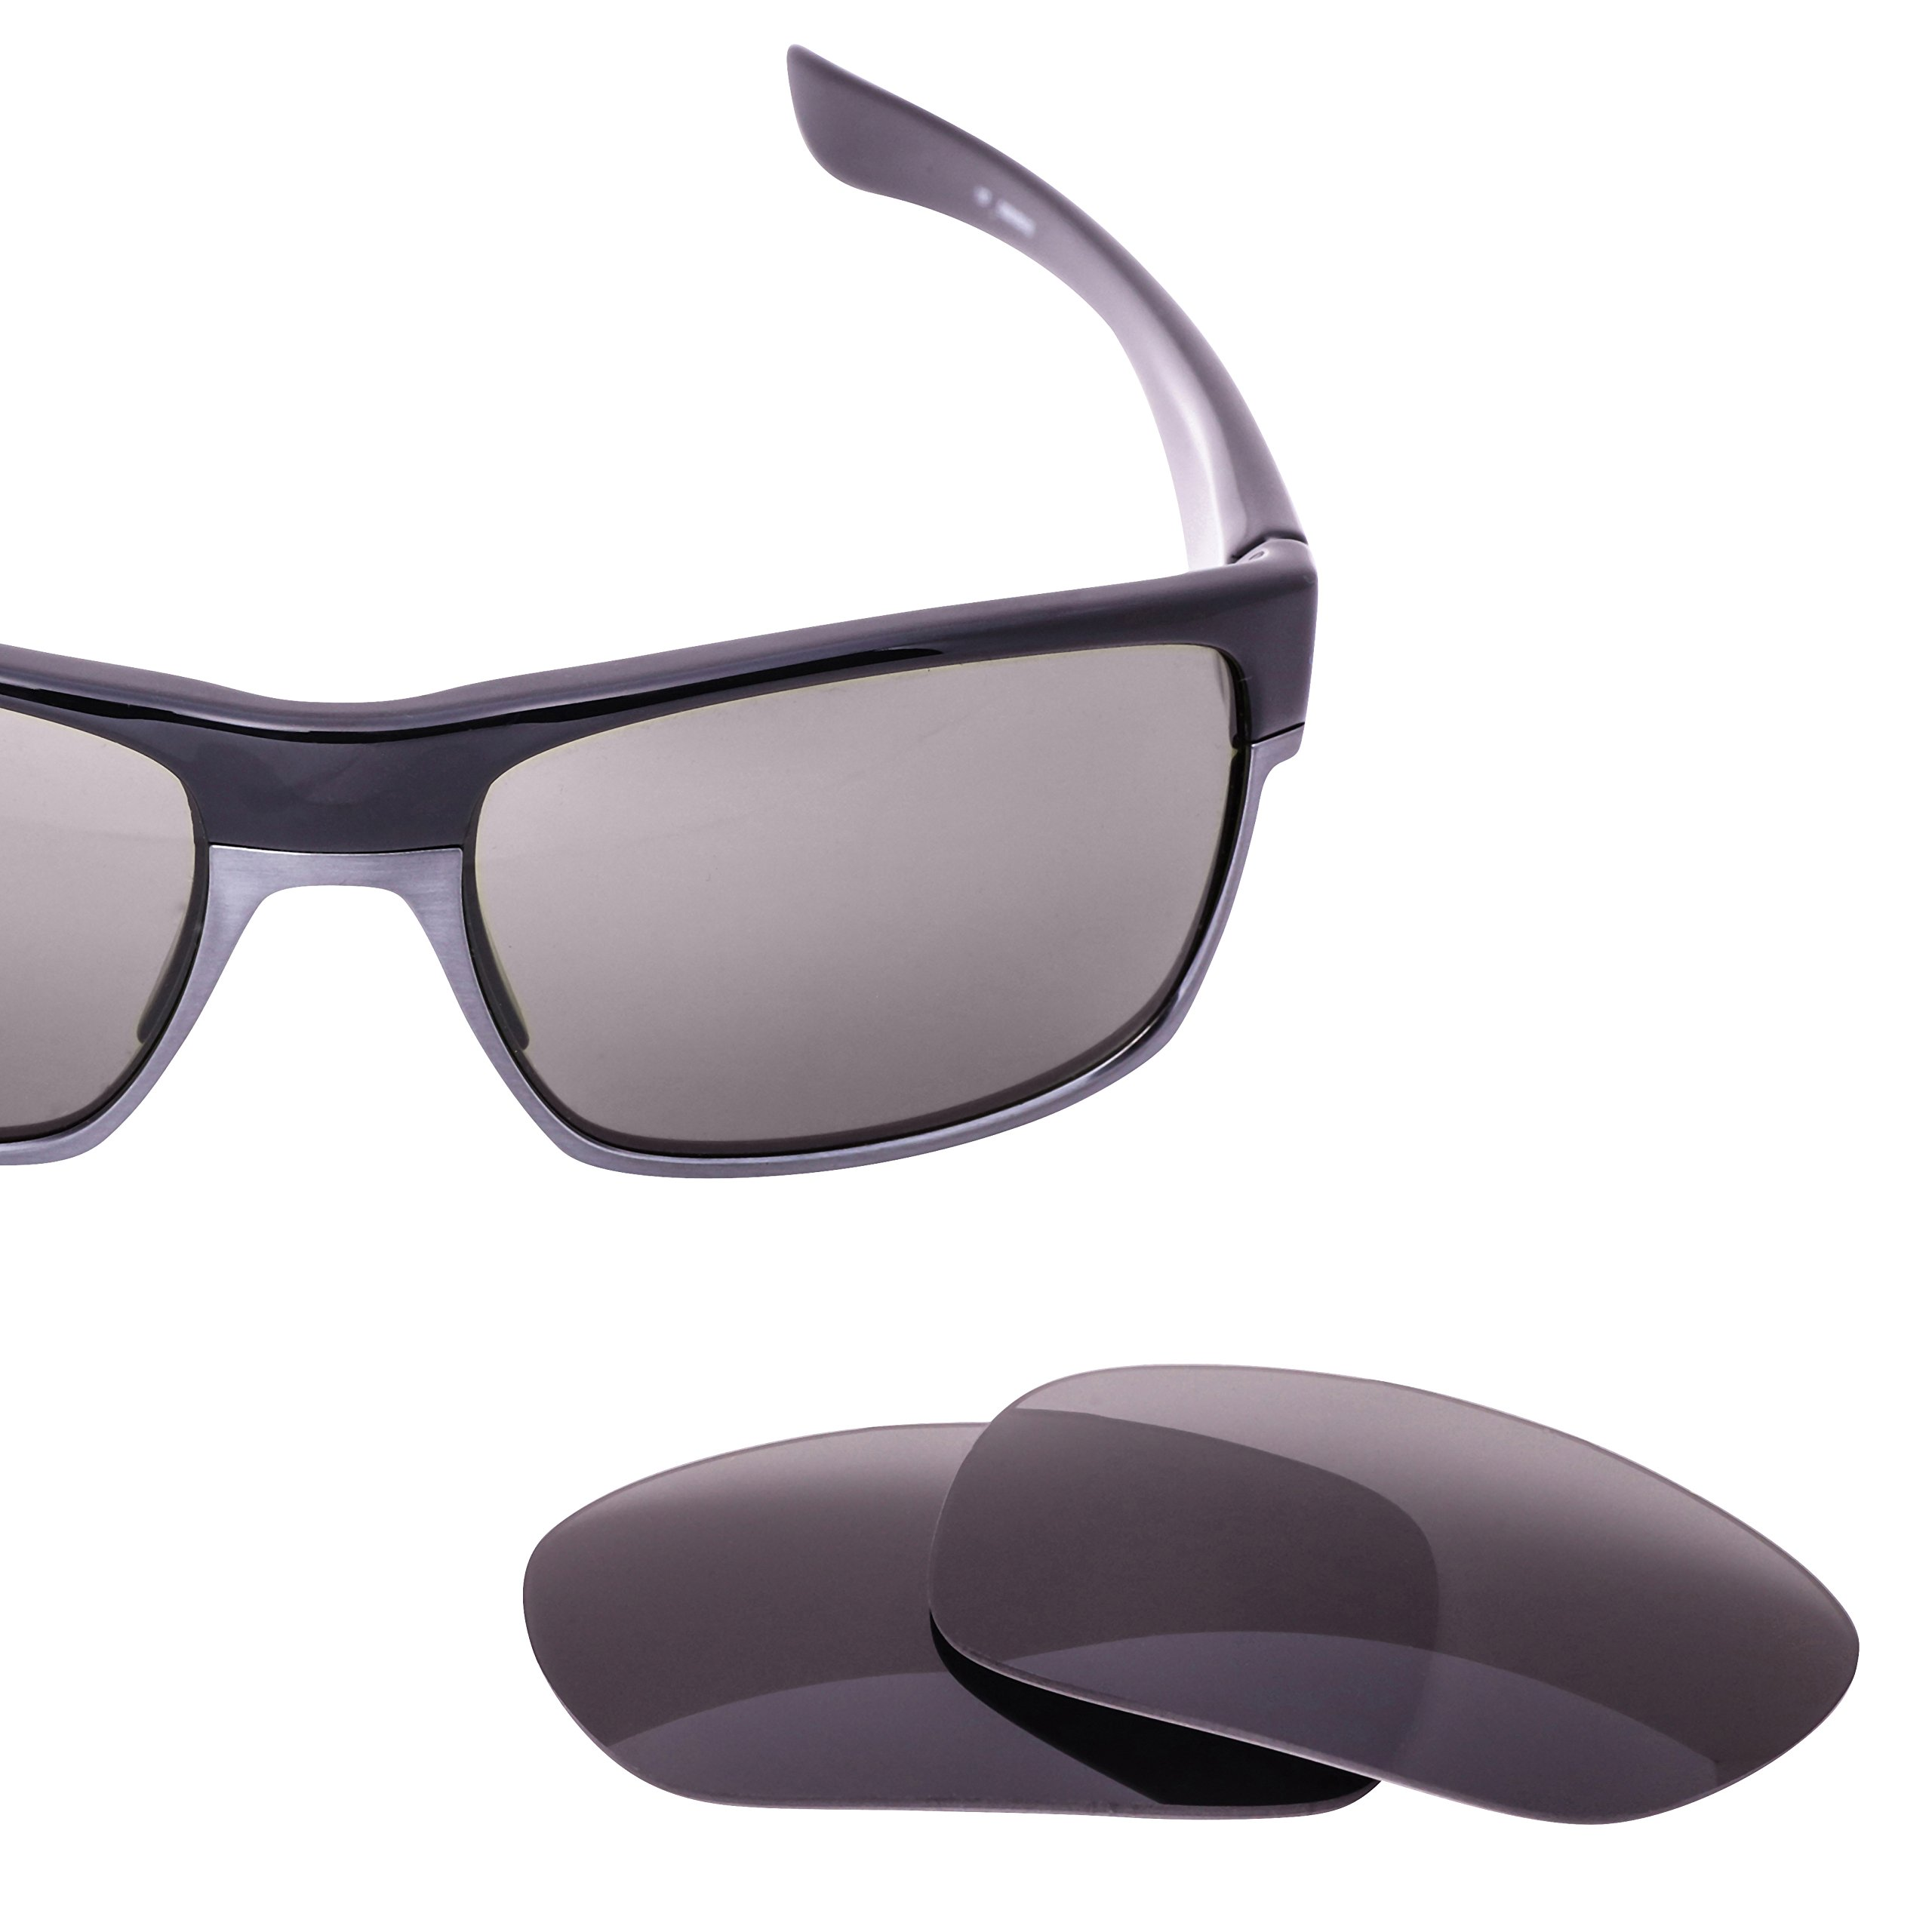 Polarized LenzFlip Replacement Lenses for Oakley TwoFace Sunglasses - Gray Black Polarized Lenses